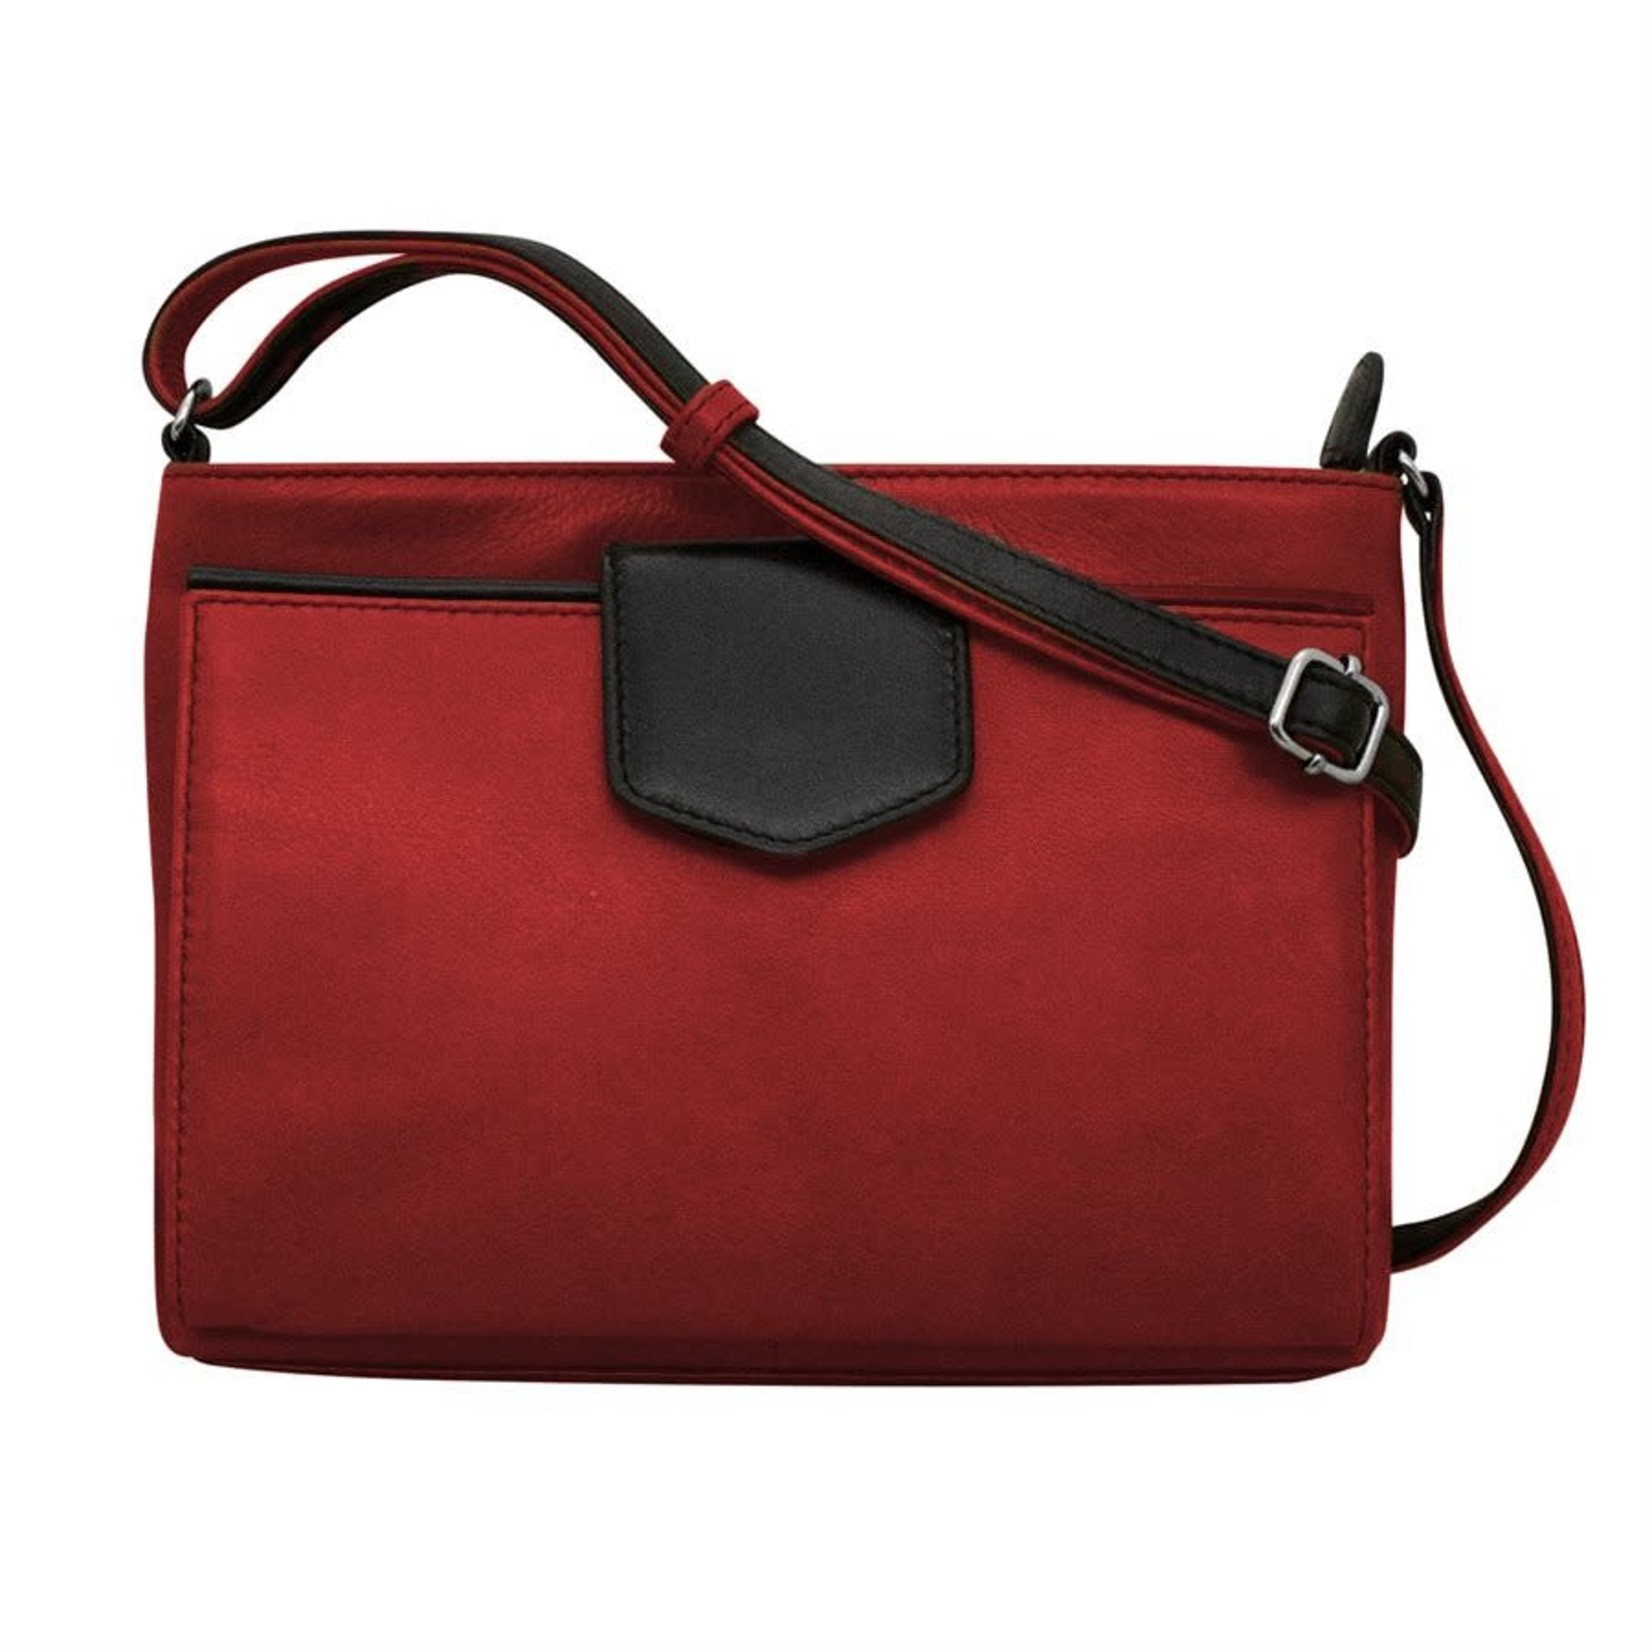 Leather Handbags and Accessories 6592 Red/Black - Organizer Crossbody